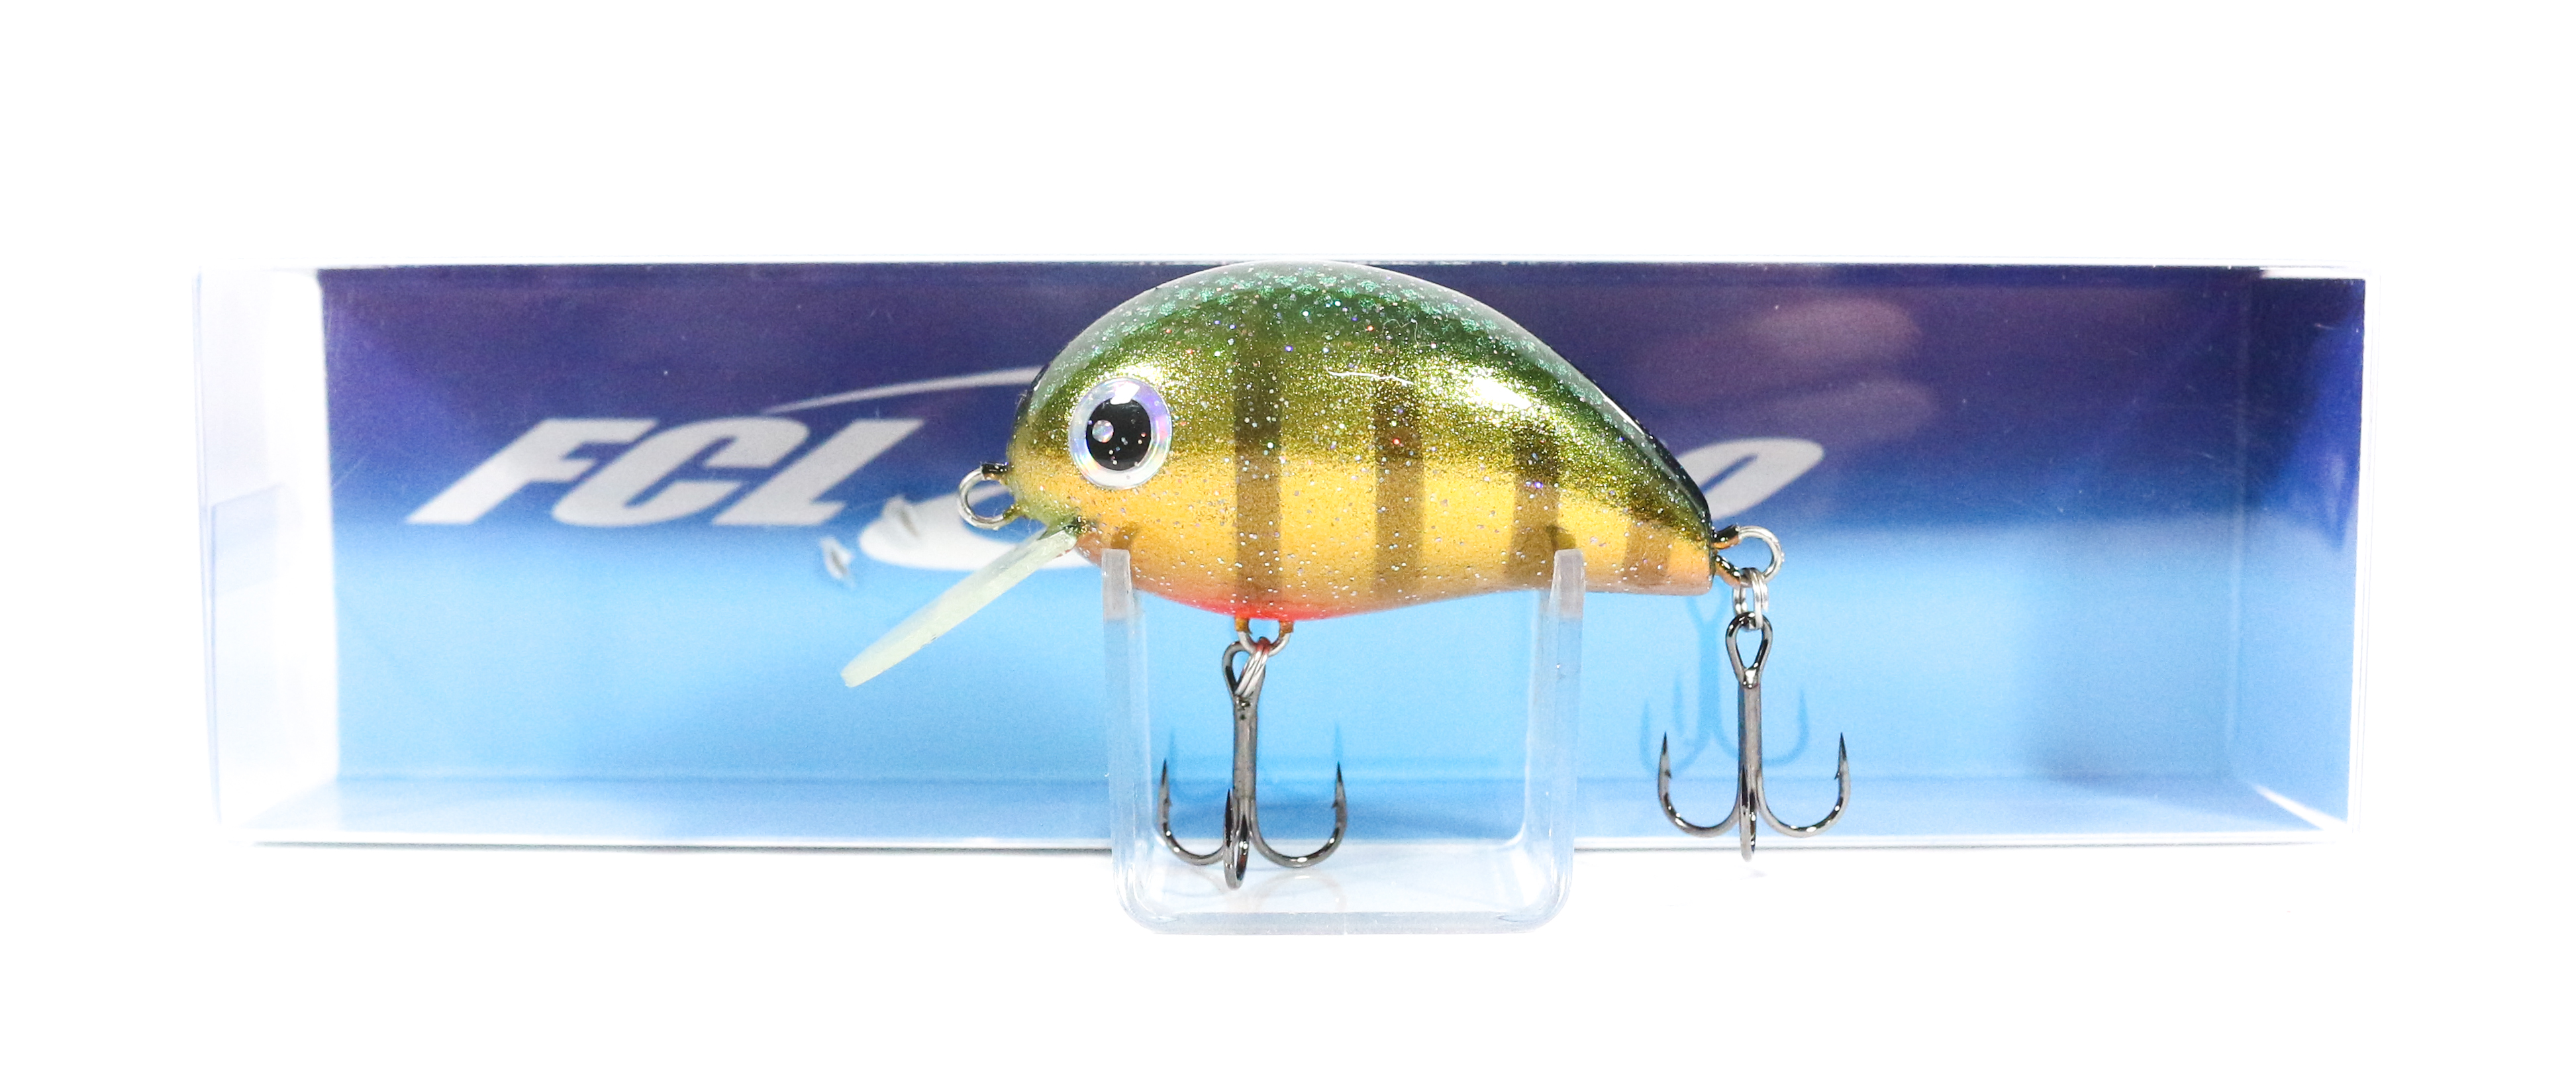 FCL Labo Ke-tu 50 Floating Lure GPCH (4594)